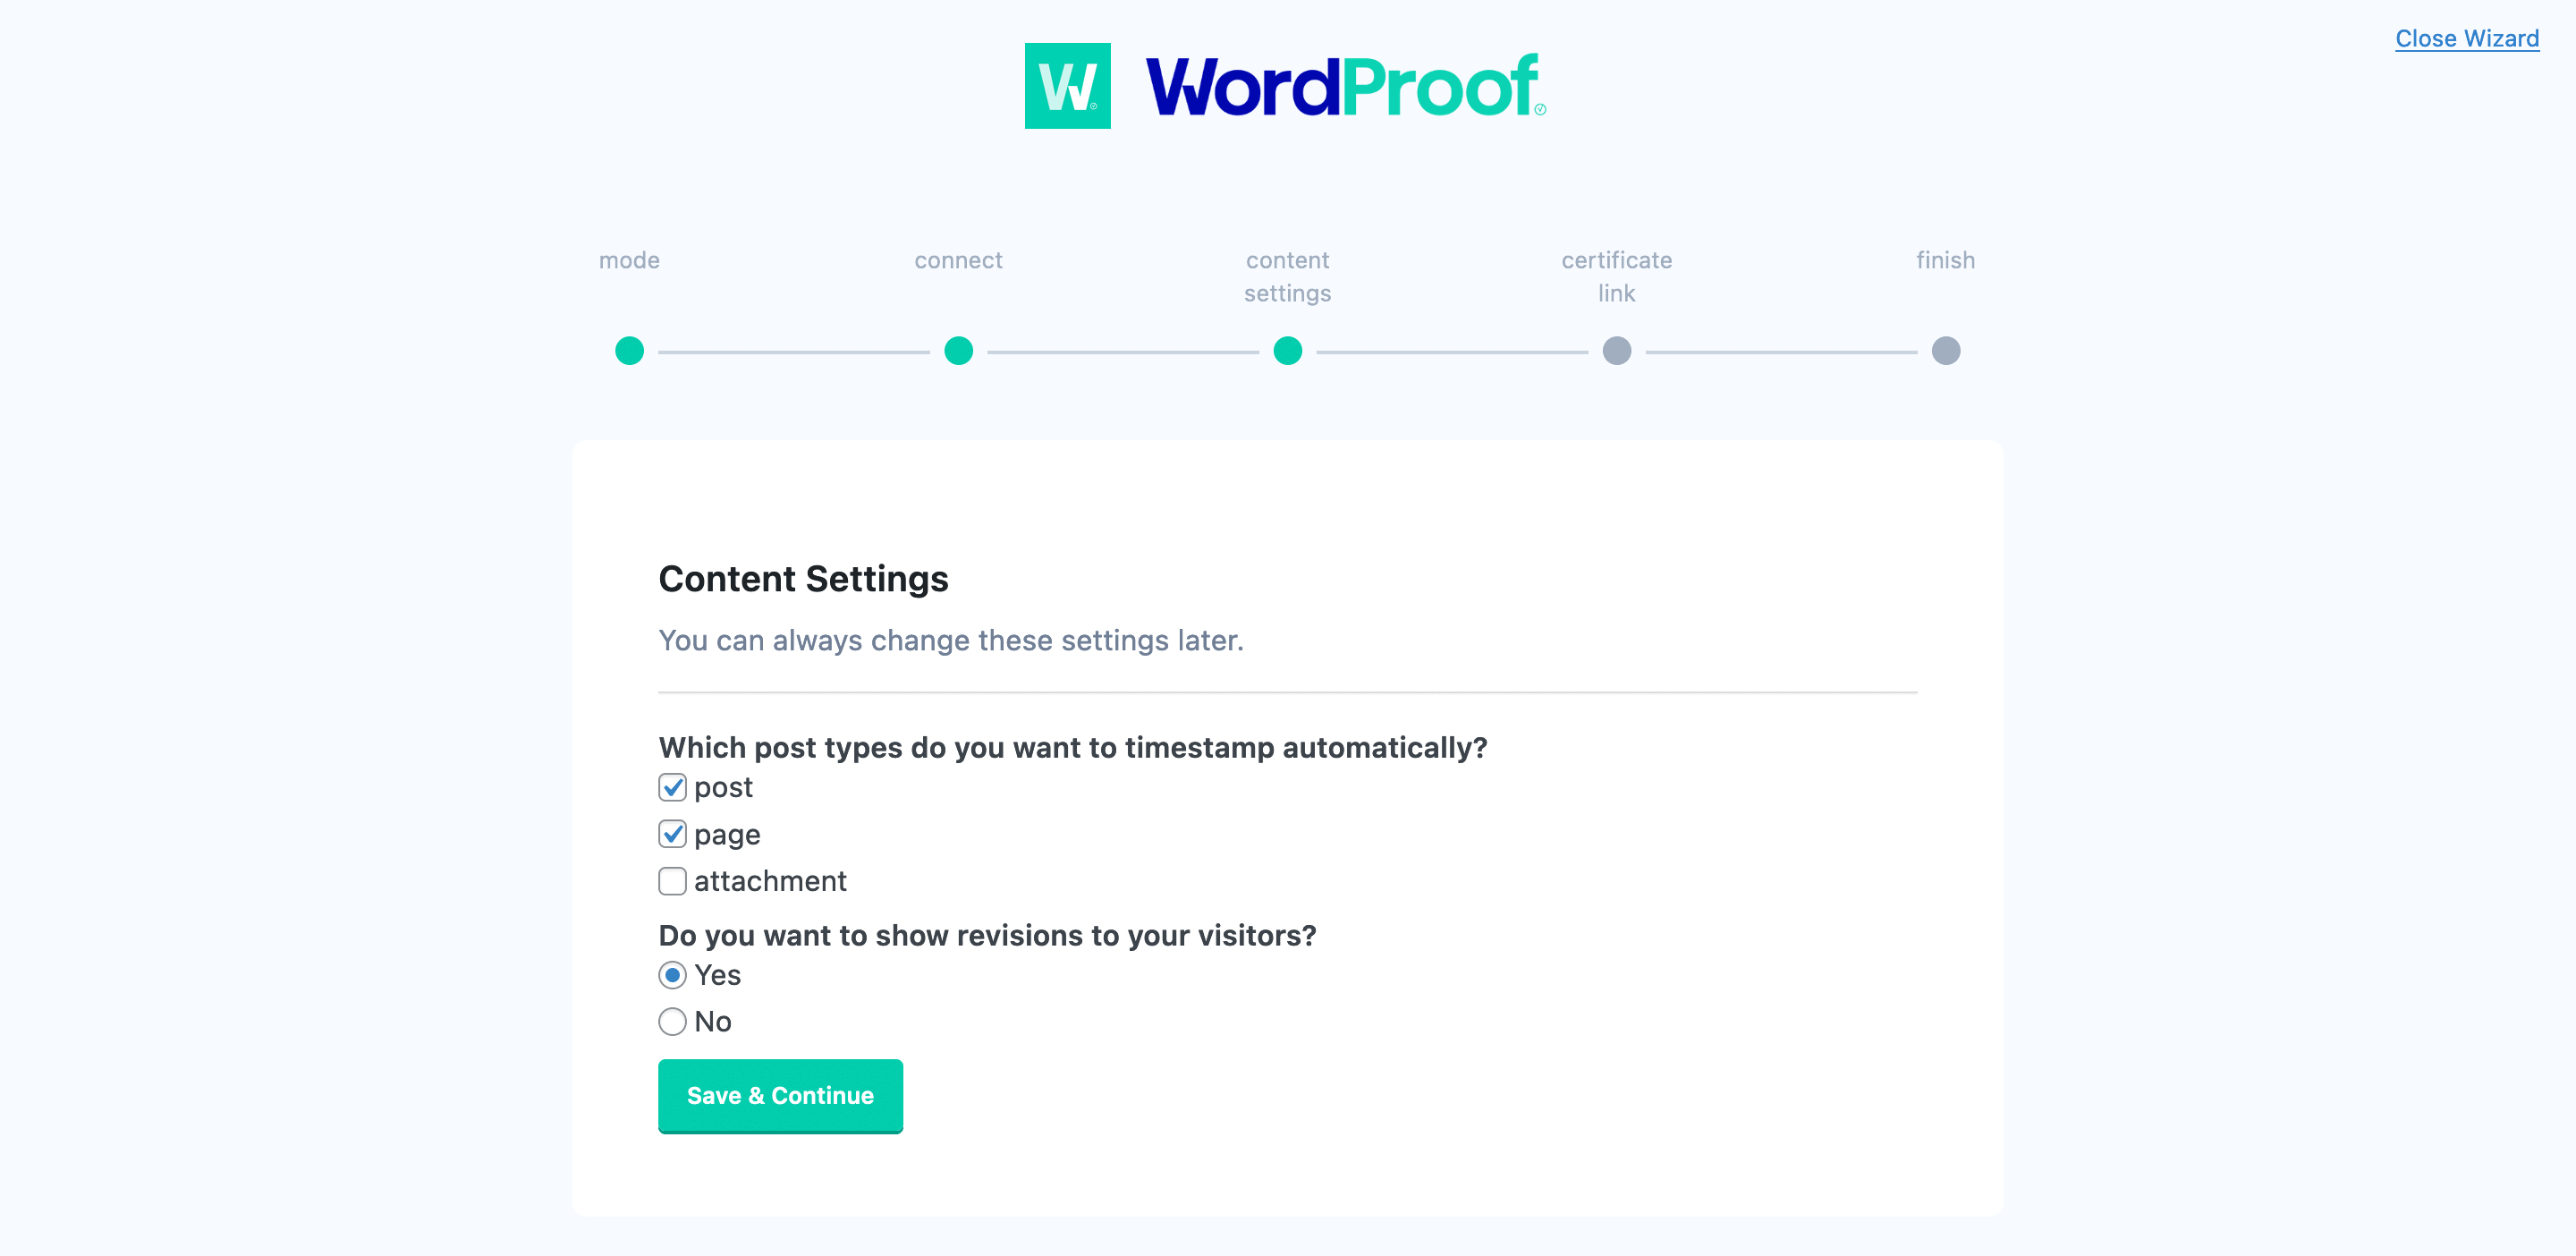 Running through the content settings within WordProof.